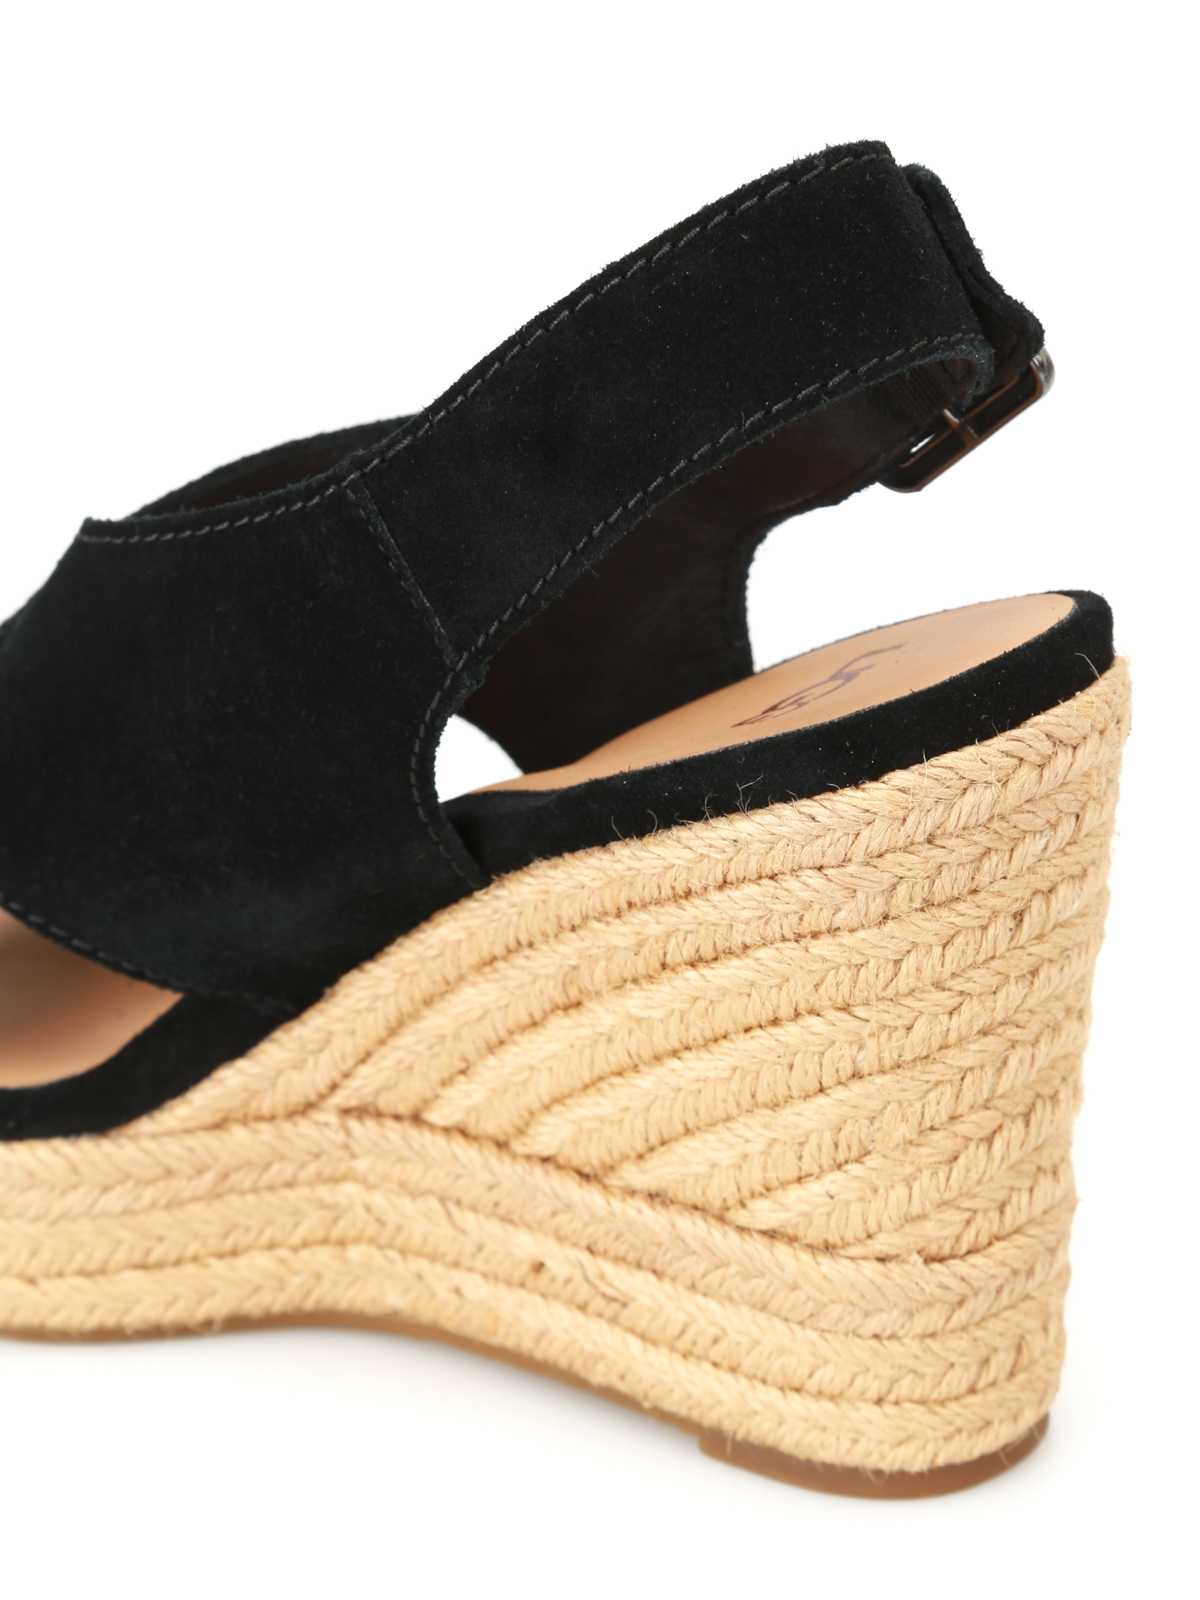 2c7e51624aa Ugg - Harlow black suede wedge sandals - sandals - W HARLOW 1019902 ...